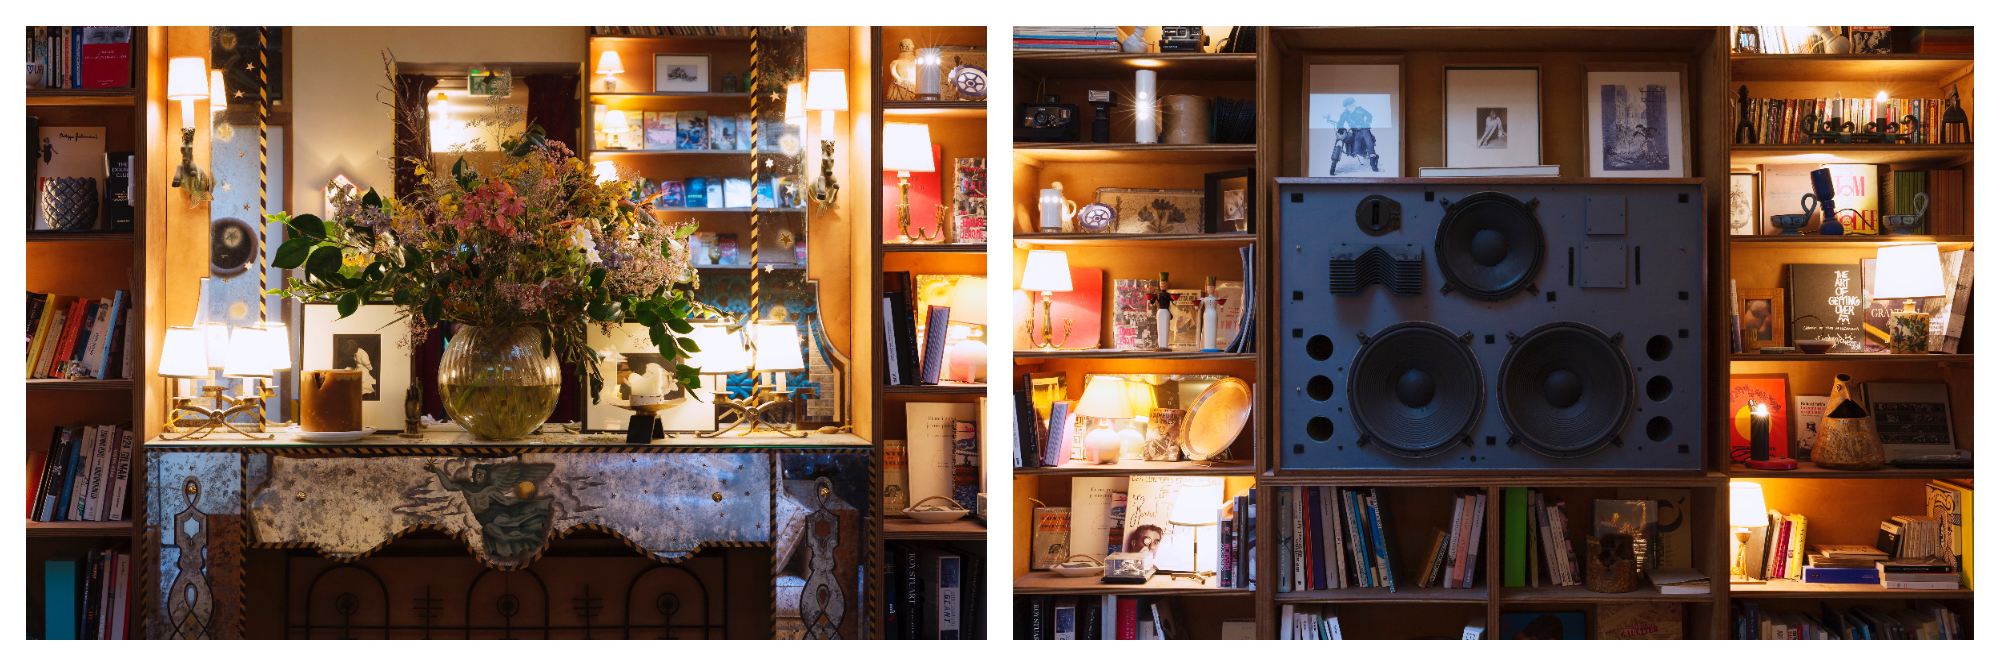 On left: An abundant bouquet of flowers sits on the fireplace mantle of Hôtel Grand Amour, an hotel and restaurant located in Paris' ninth arrondissement. On right: The bohemian spirit shines in Hôtel Grand Amour, bookshelves crammed with books and photographs.